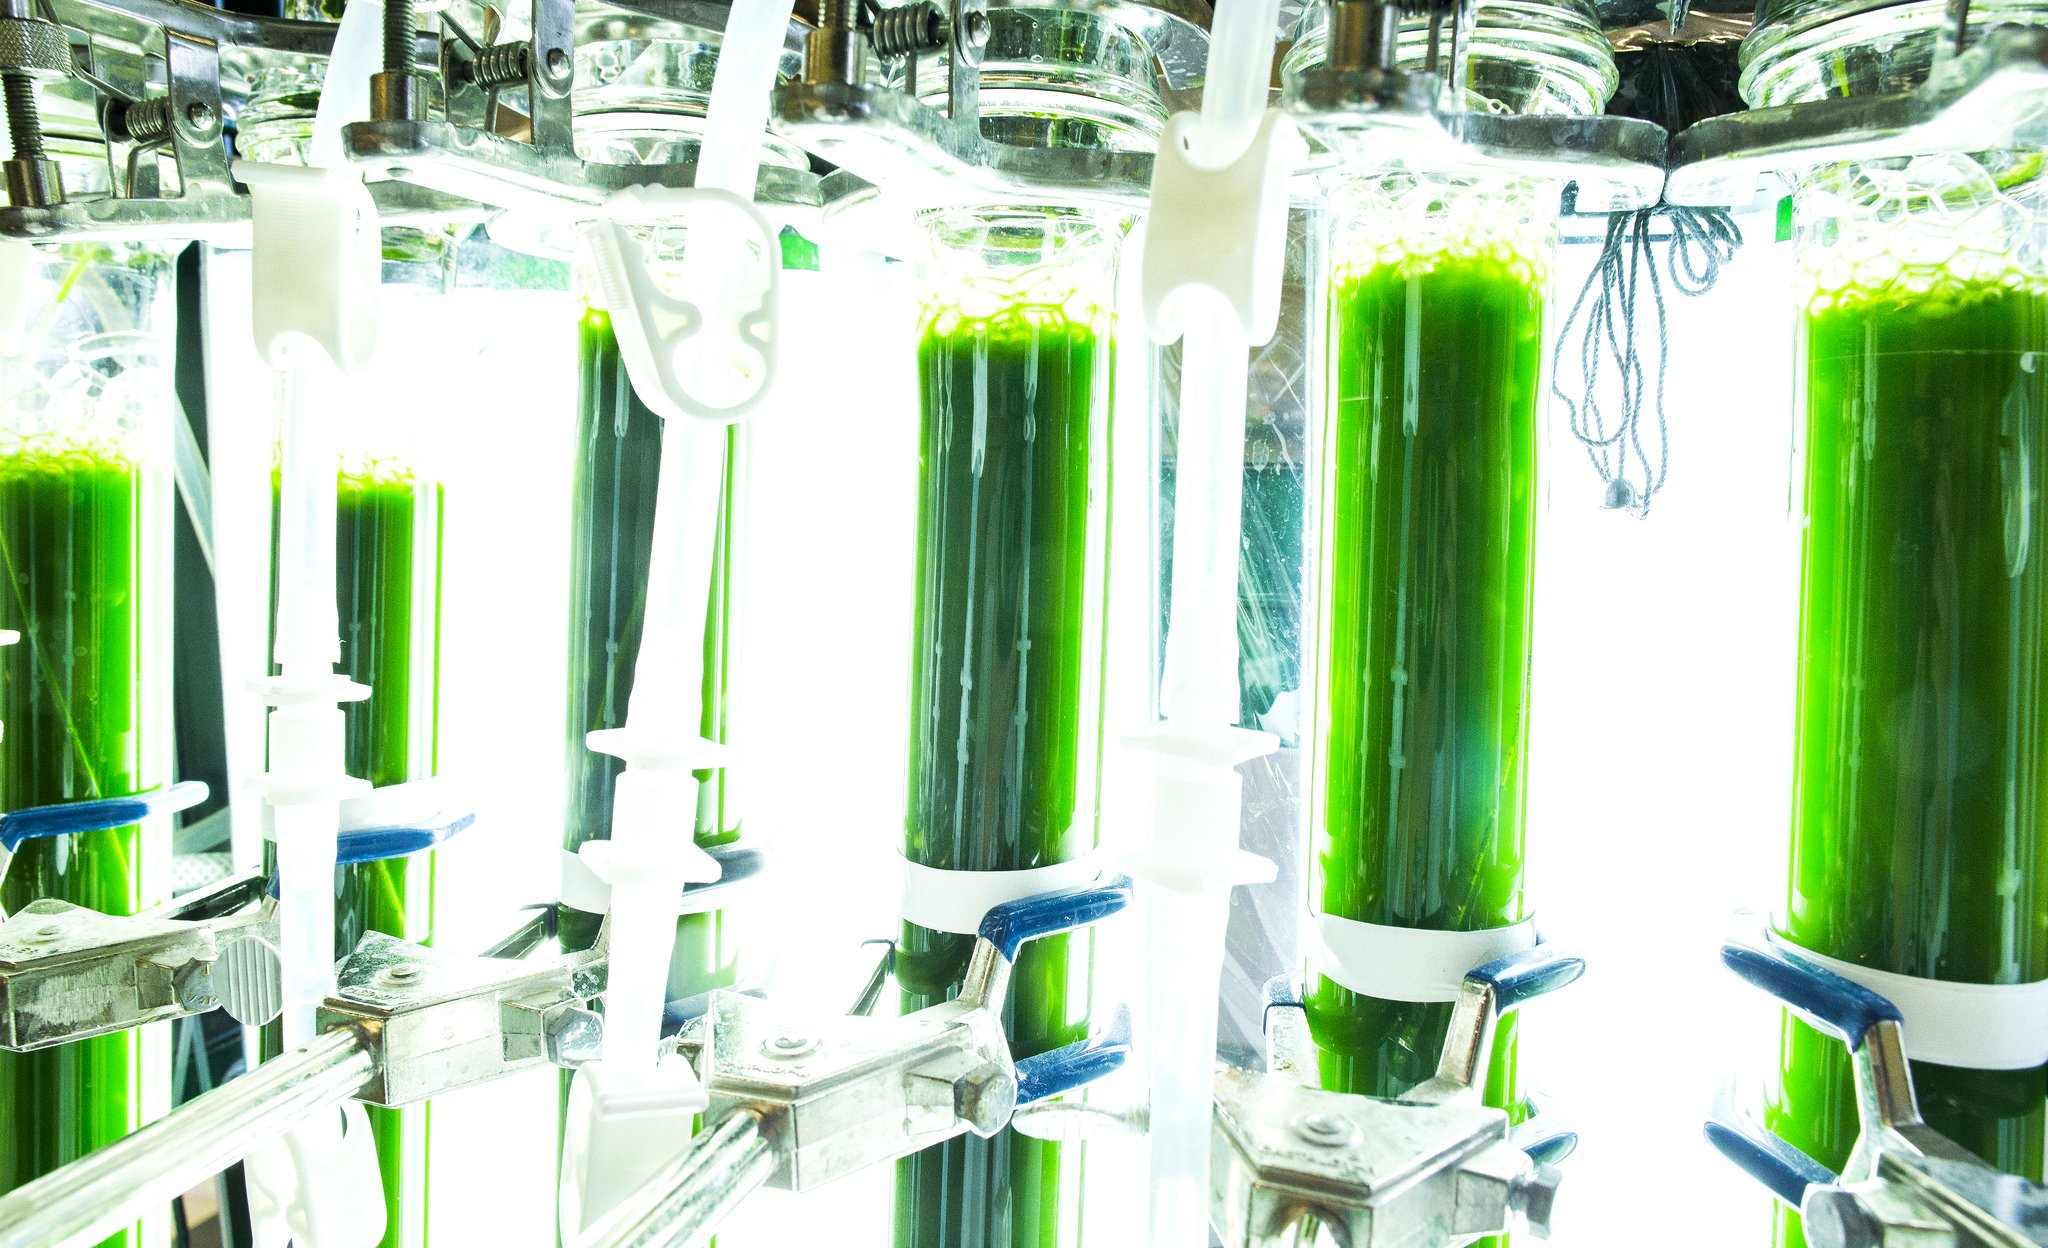 Live microalgae that can be used in the manufacturing of biodiesel fuel. Image credit: Joseph Xu, Michigan Engineering